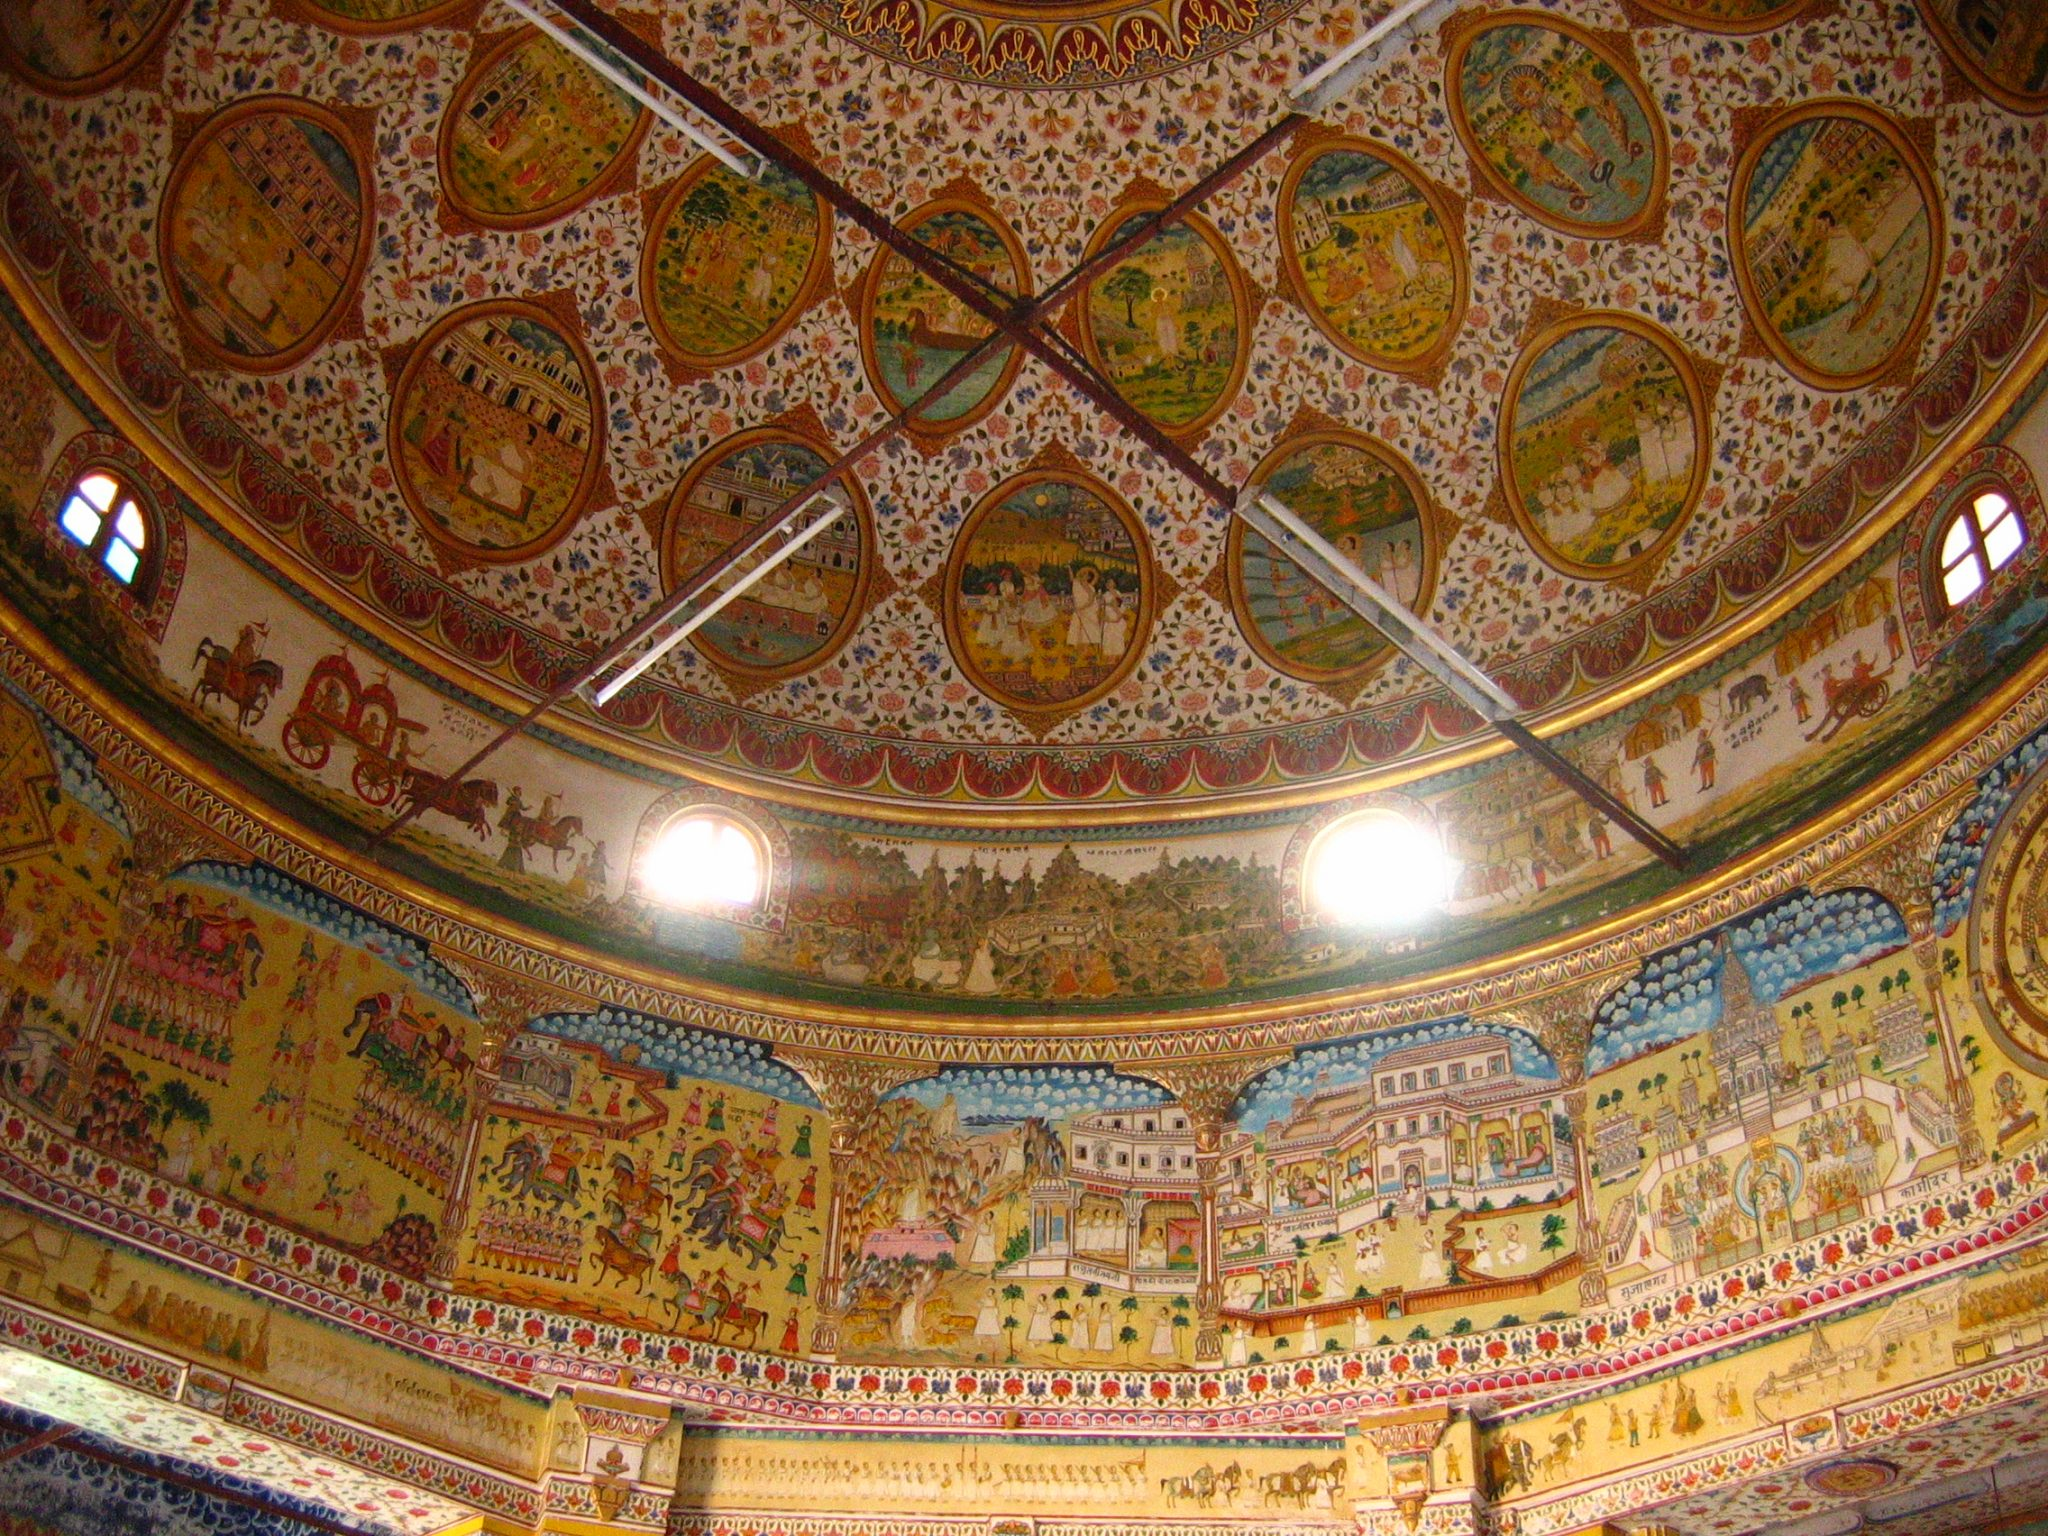 Inside of Jain Temple in Bikaner, Rajastan